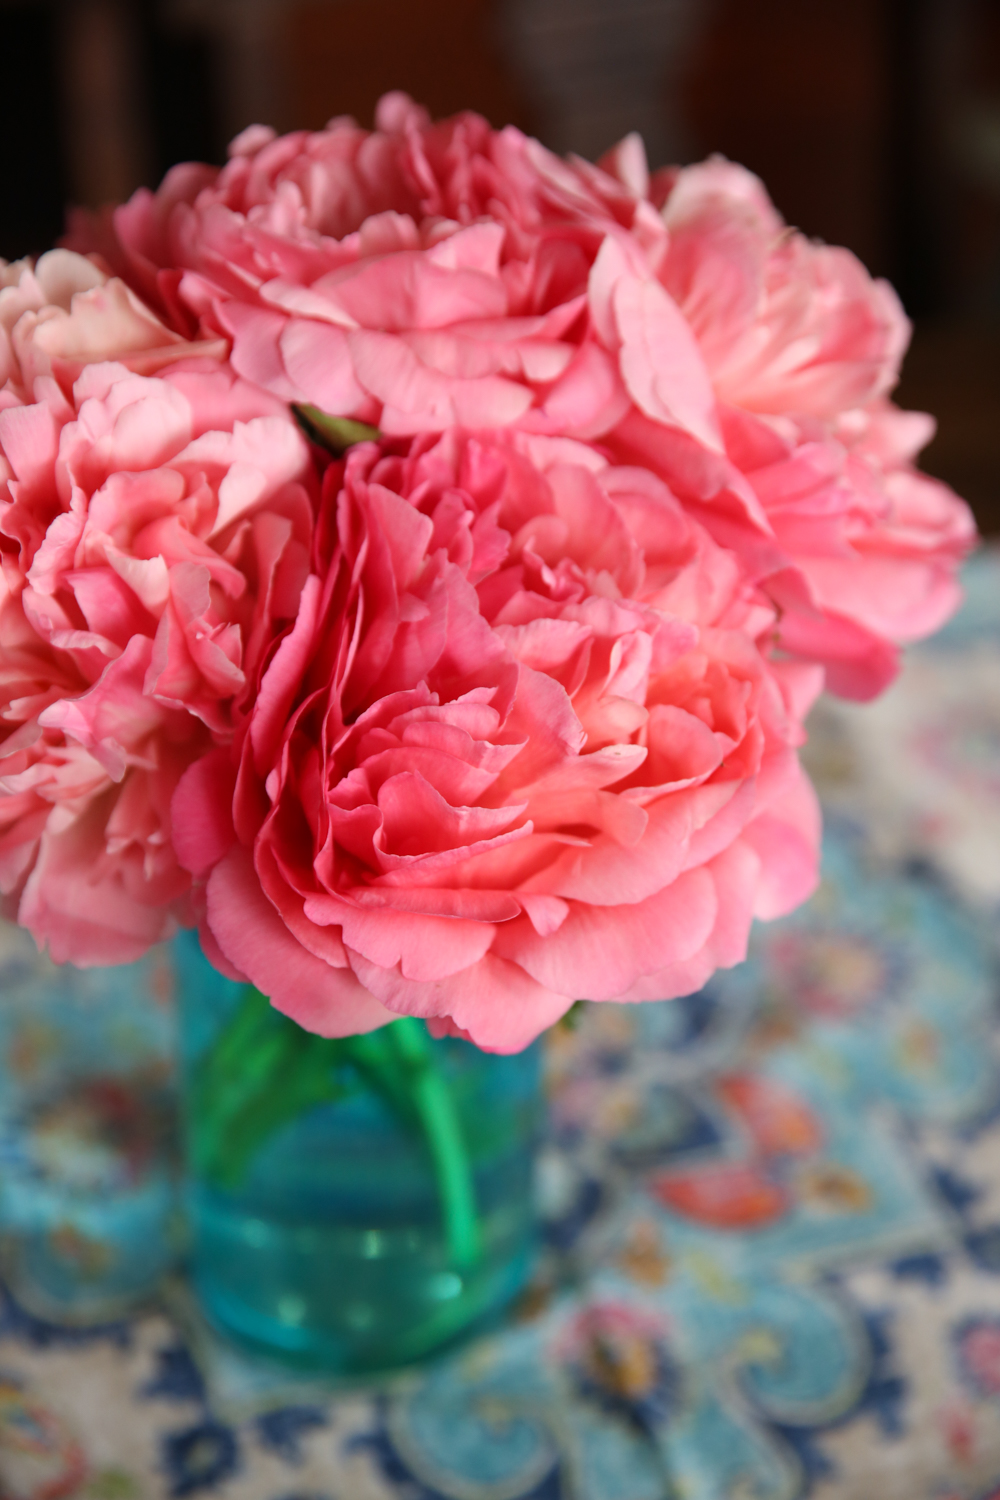 Coral Charm Semi Double Peony